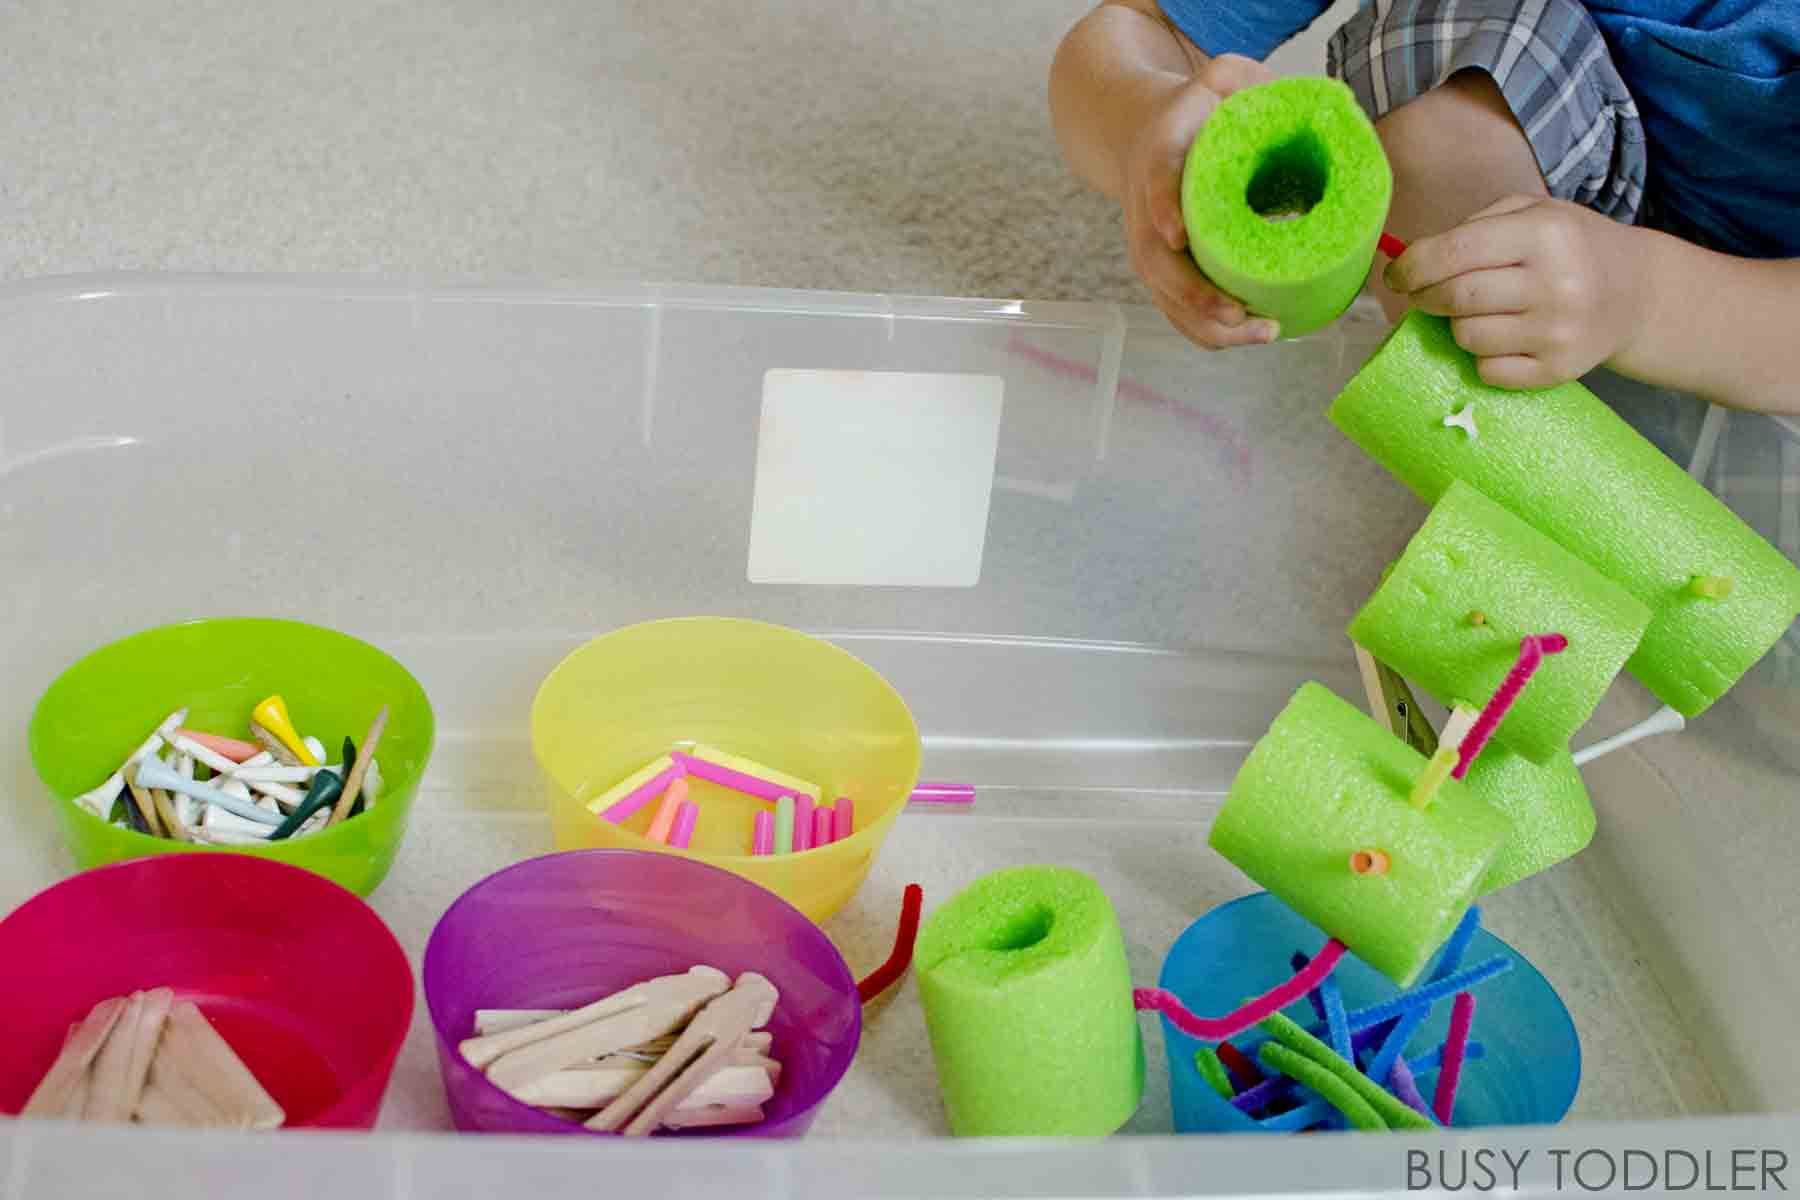 Poking Bin Fine Motor Skills Fun Busy Toddler